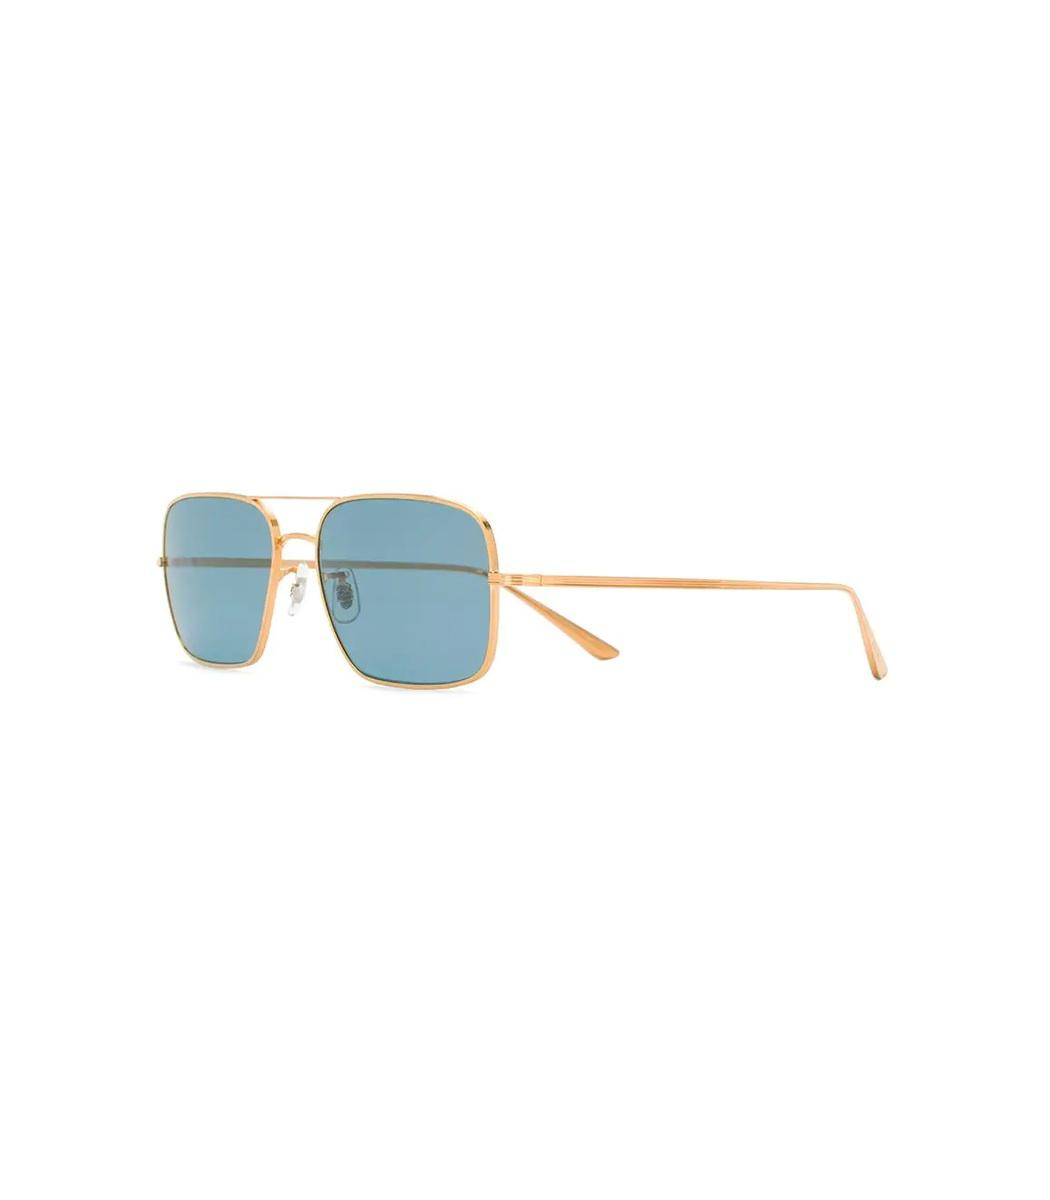 93f72ce3ff0 Oliver Peoples - Blue Victory La Sunglasses - Lyst. View fullscreen